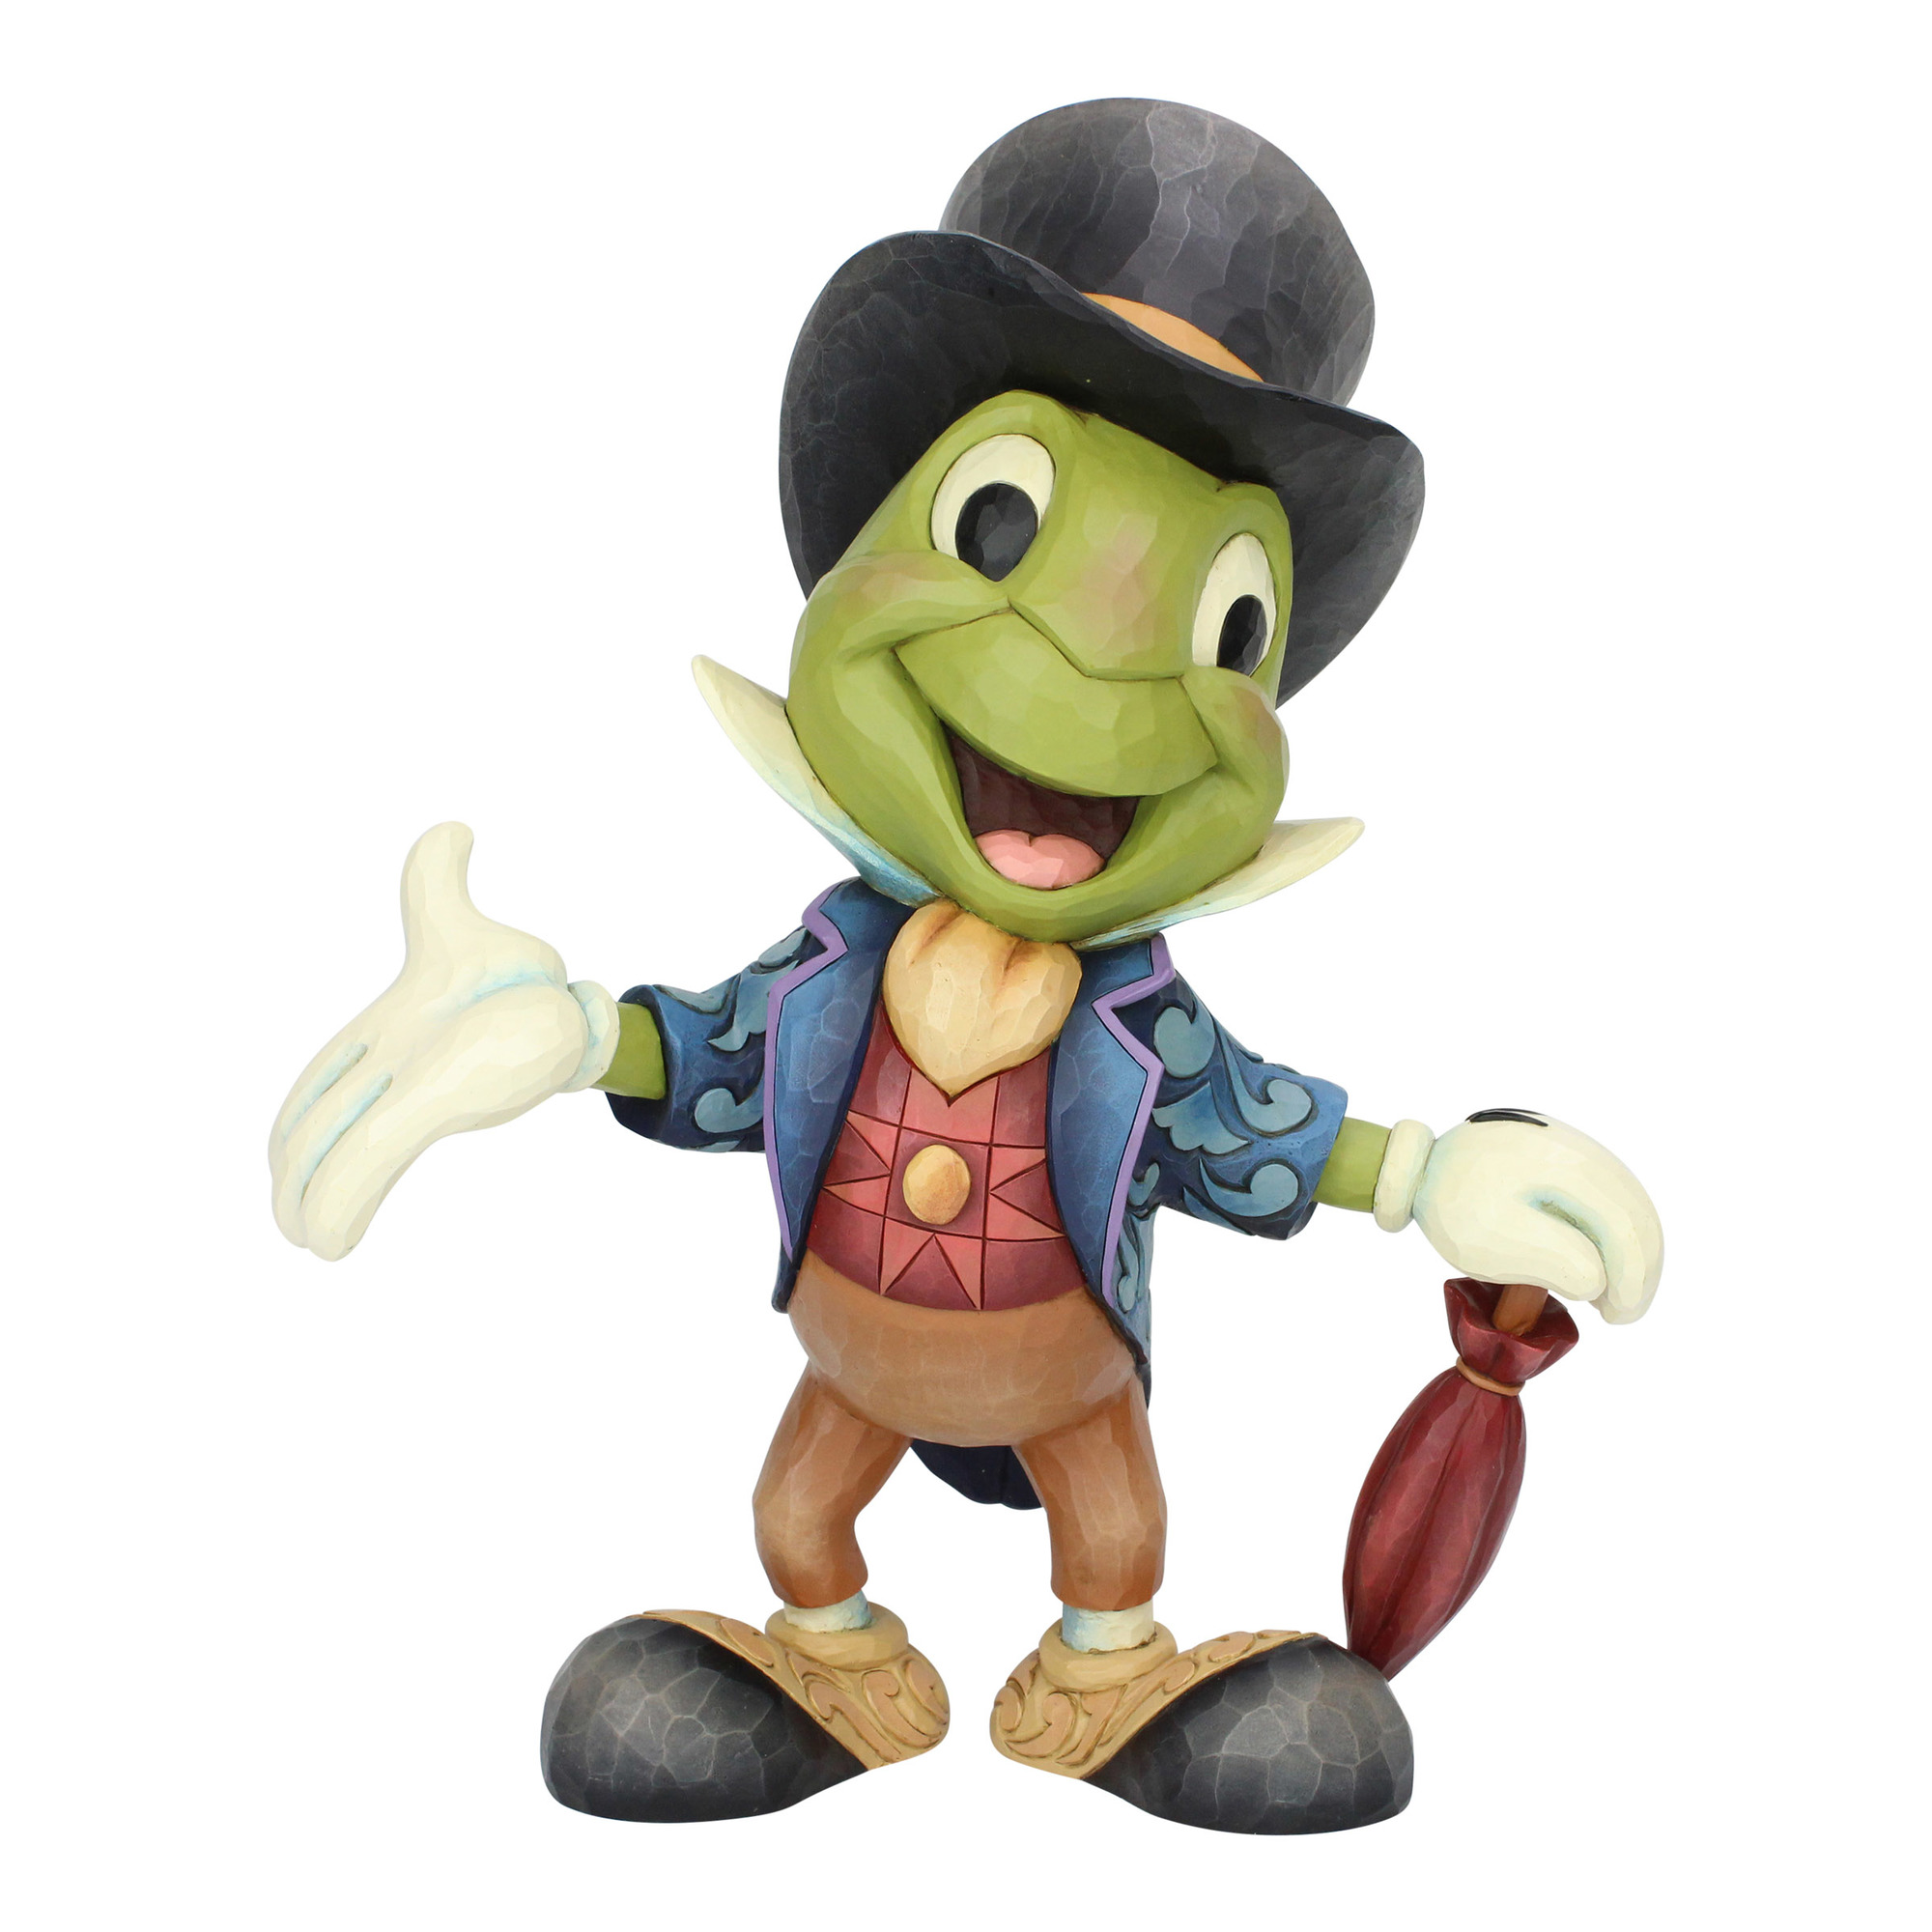 6005972 Big Fig Jiminy Cricket